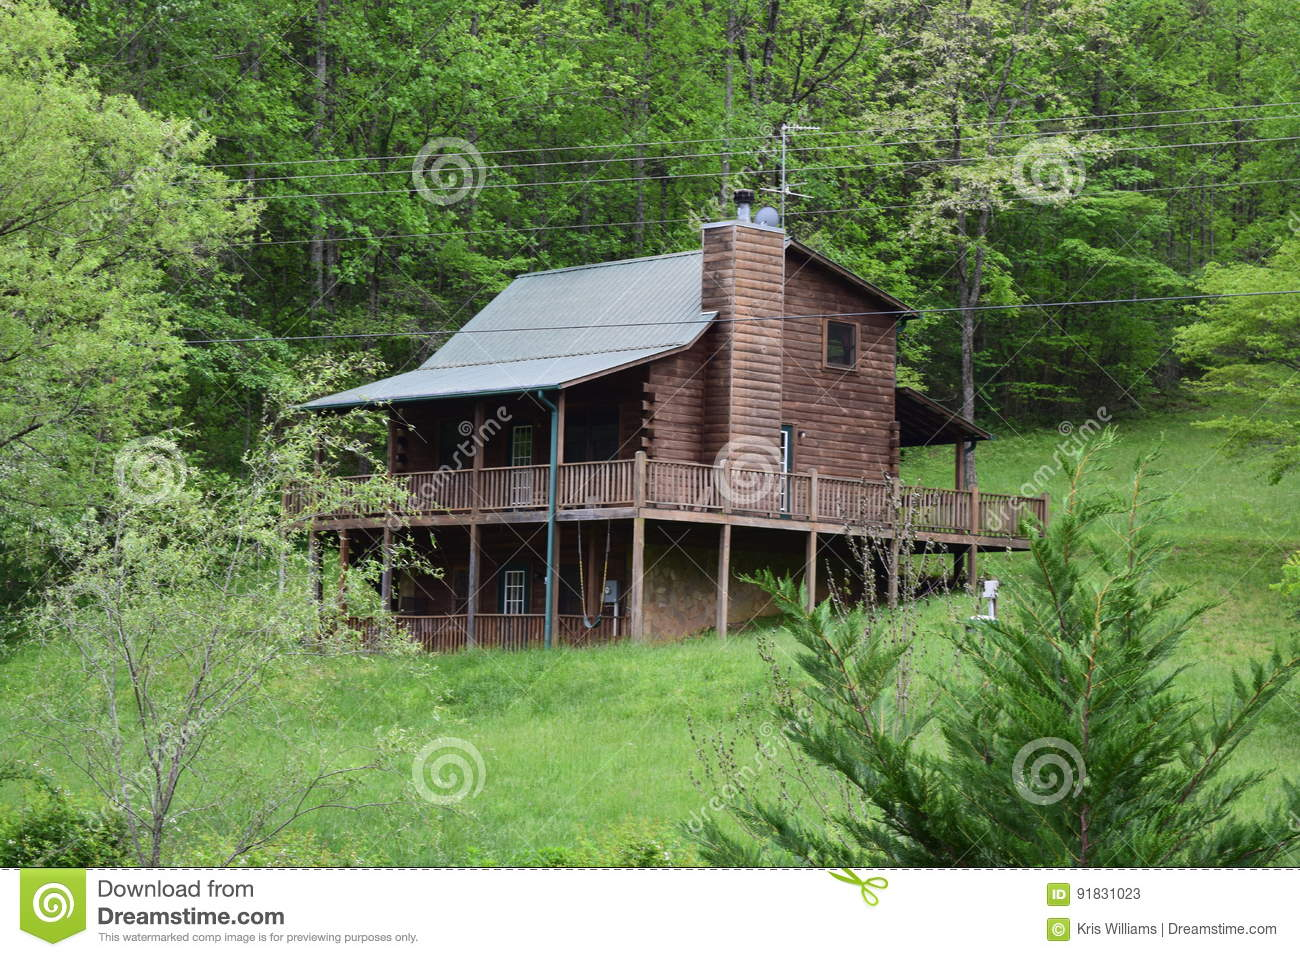 Western NC rural country mountain cabin